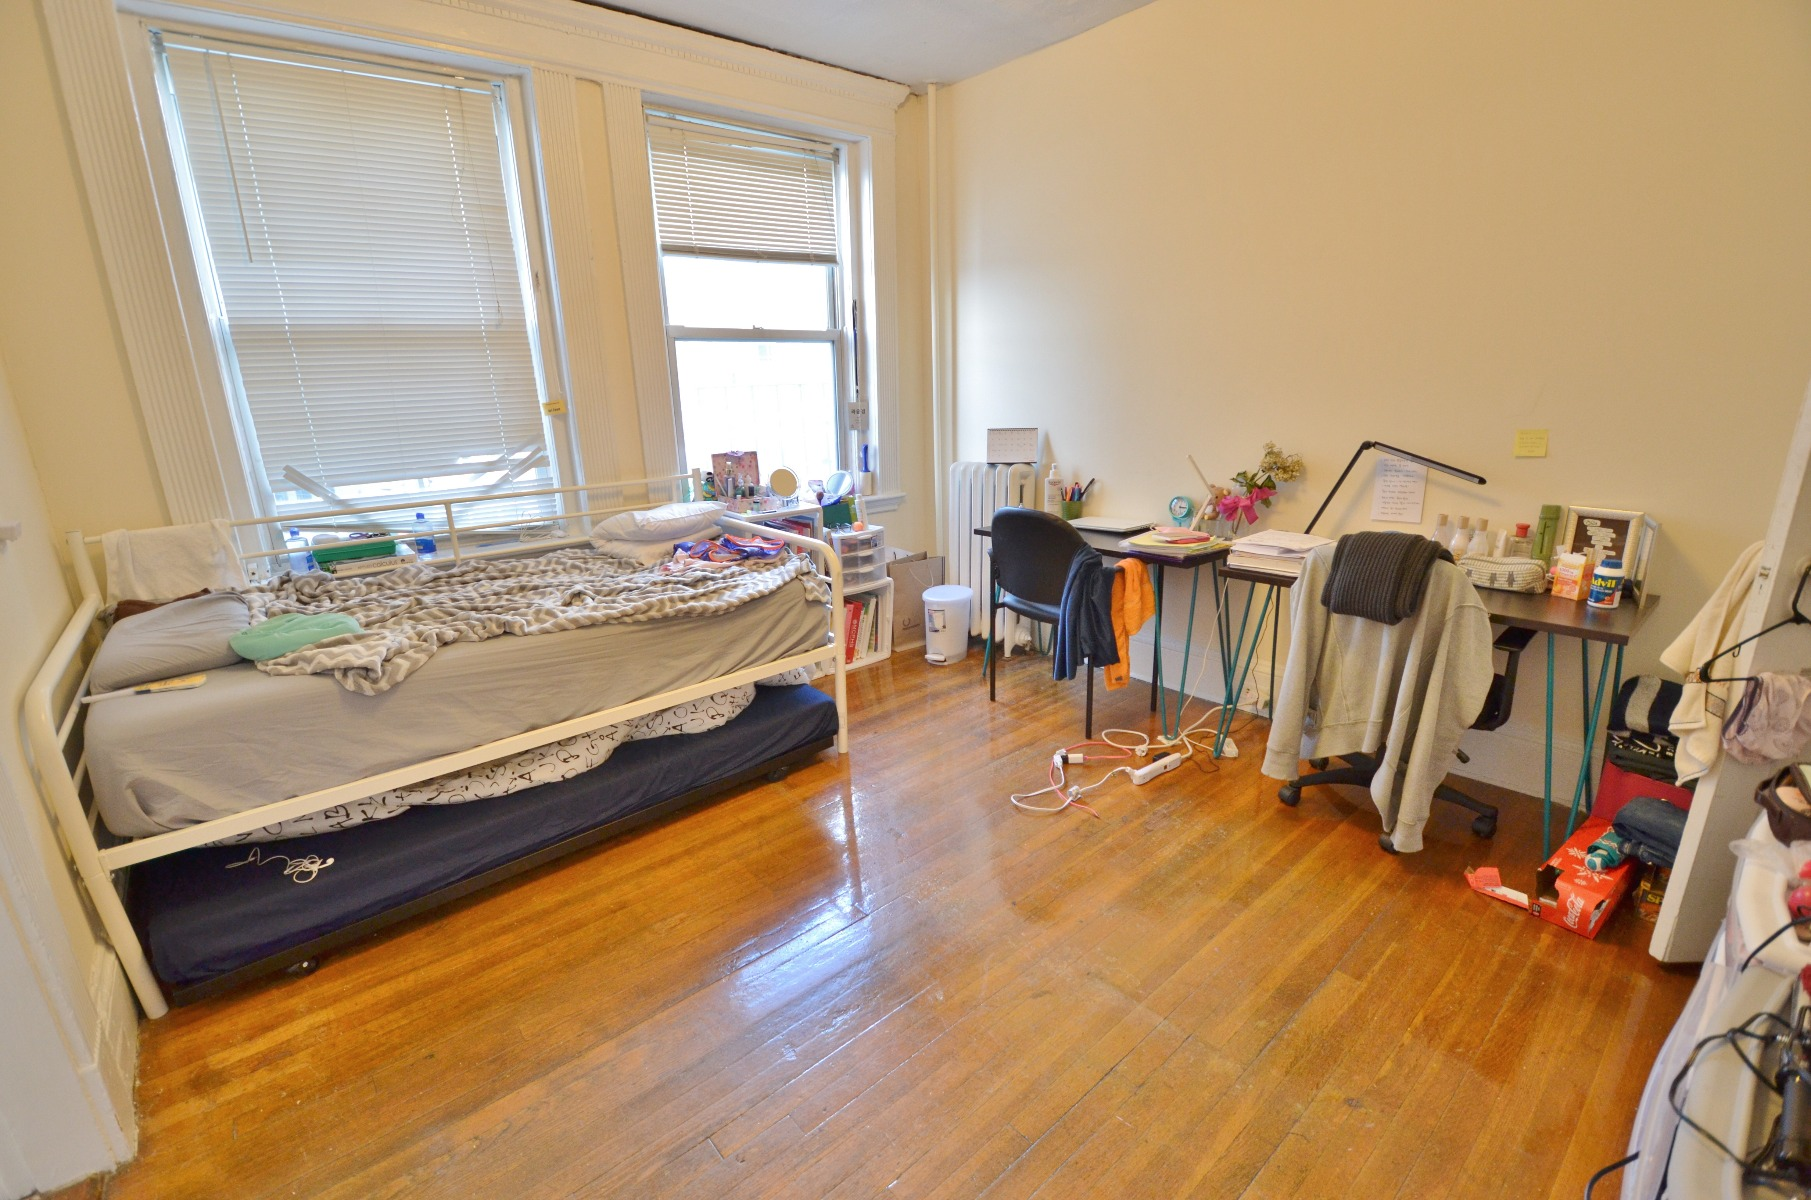 AVAIL 9/1 - MODERN 1 BR ON PETERBOROUGH, HUGE & SUNNY